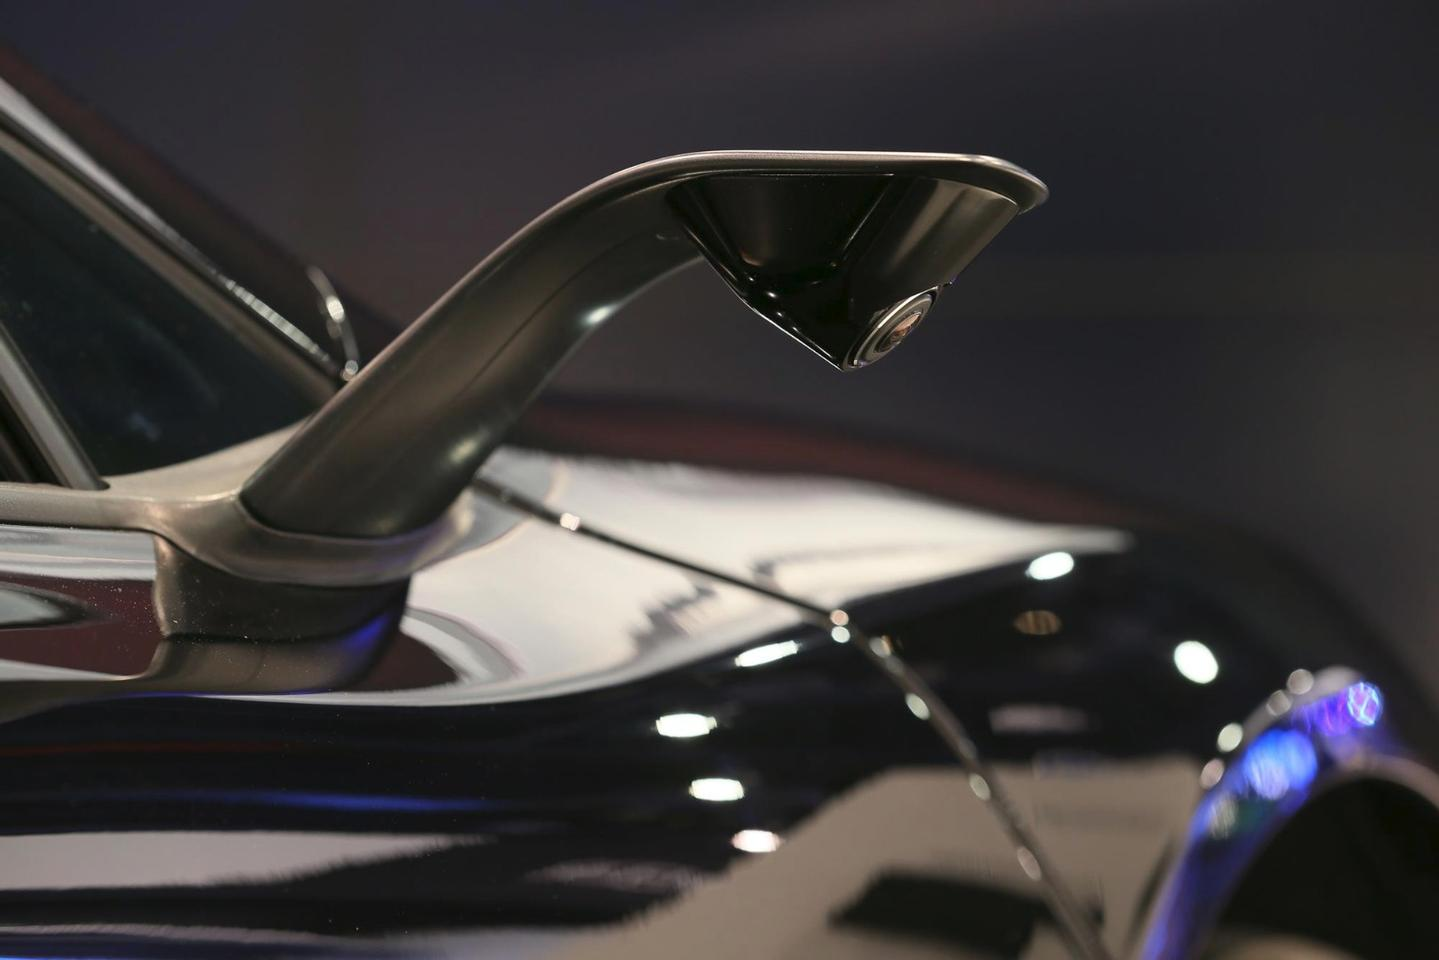 The aerodynamic wing mirrors have been replaced with thin, low-drag cameras